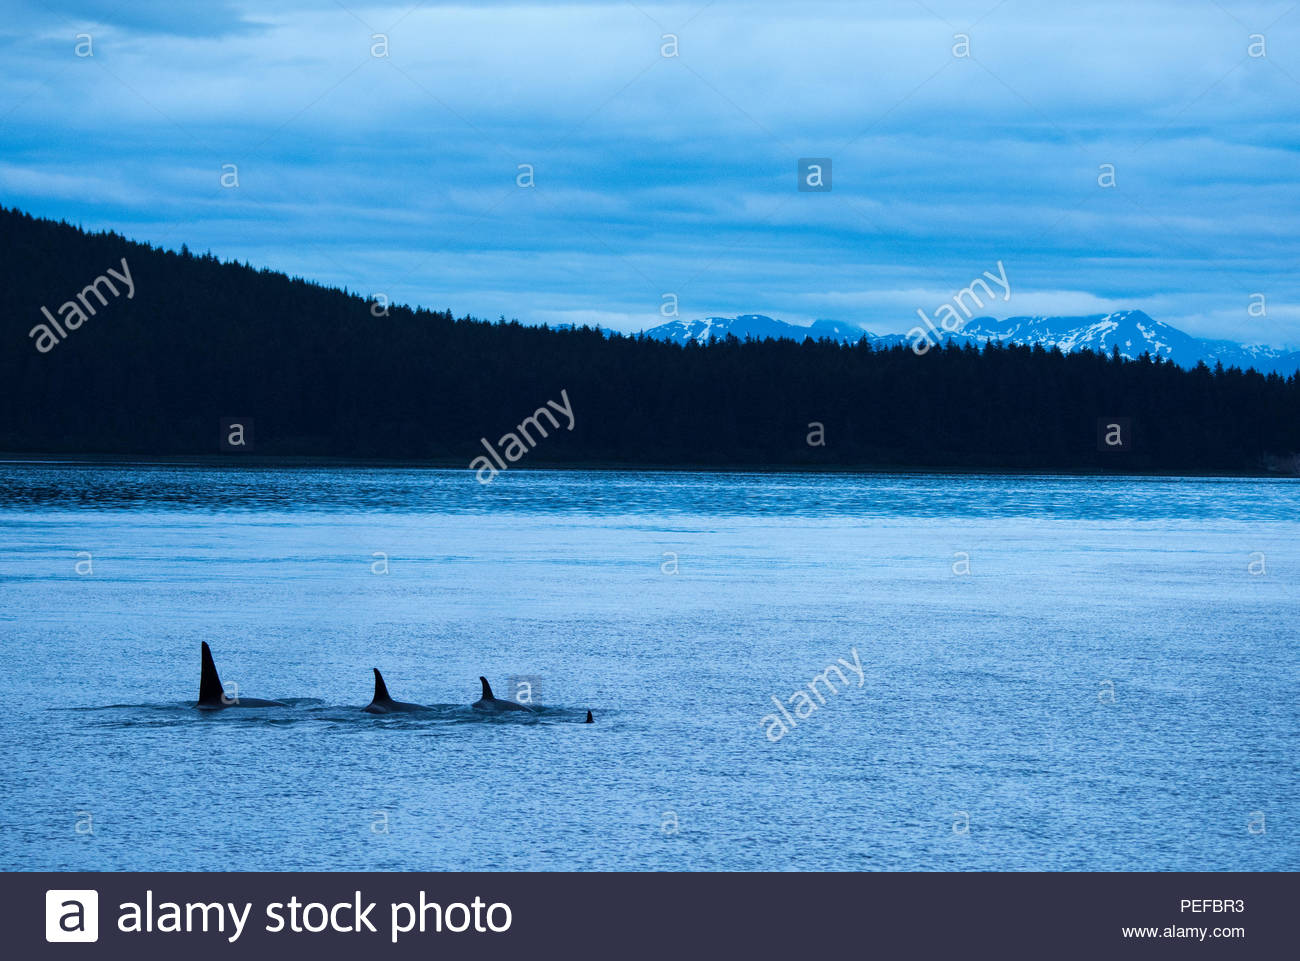 Killer whales or Orcas in Icy Straight at dusk. Stock Photo